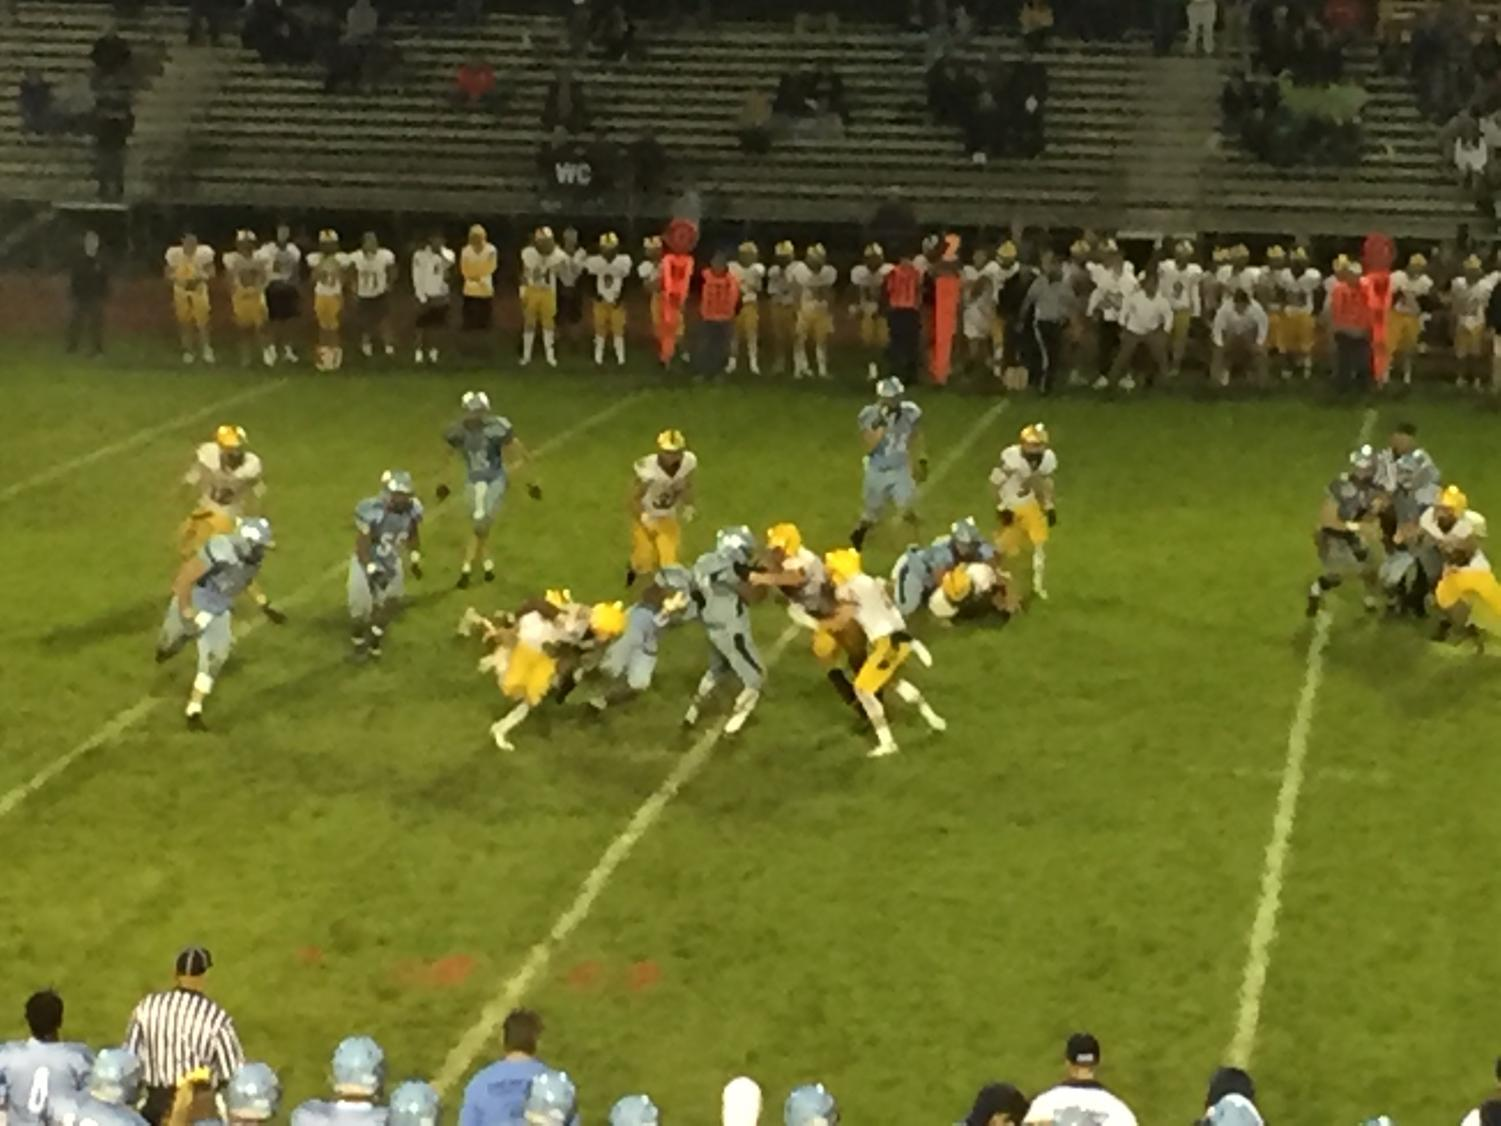 Shamar Edwards carries the ball for North Penn in their win over the CB West Bucks